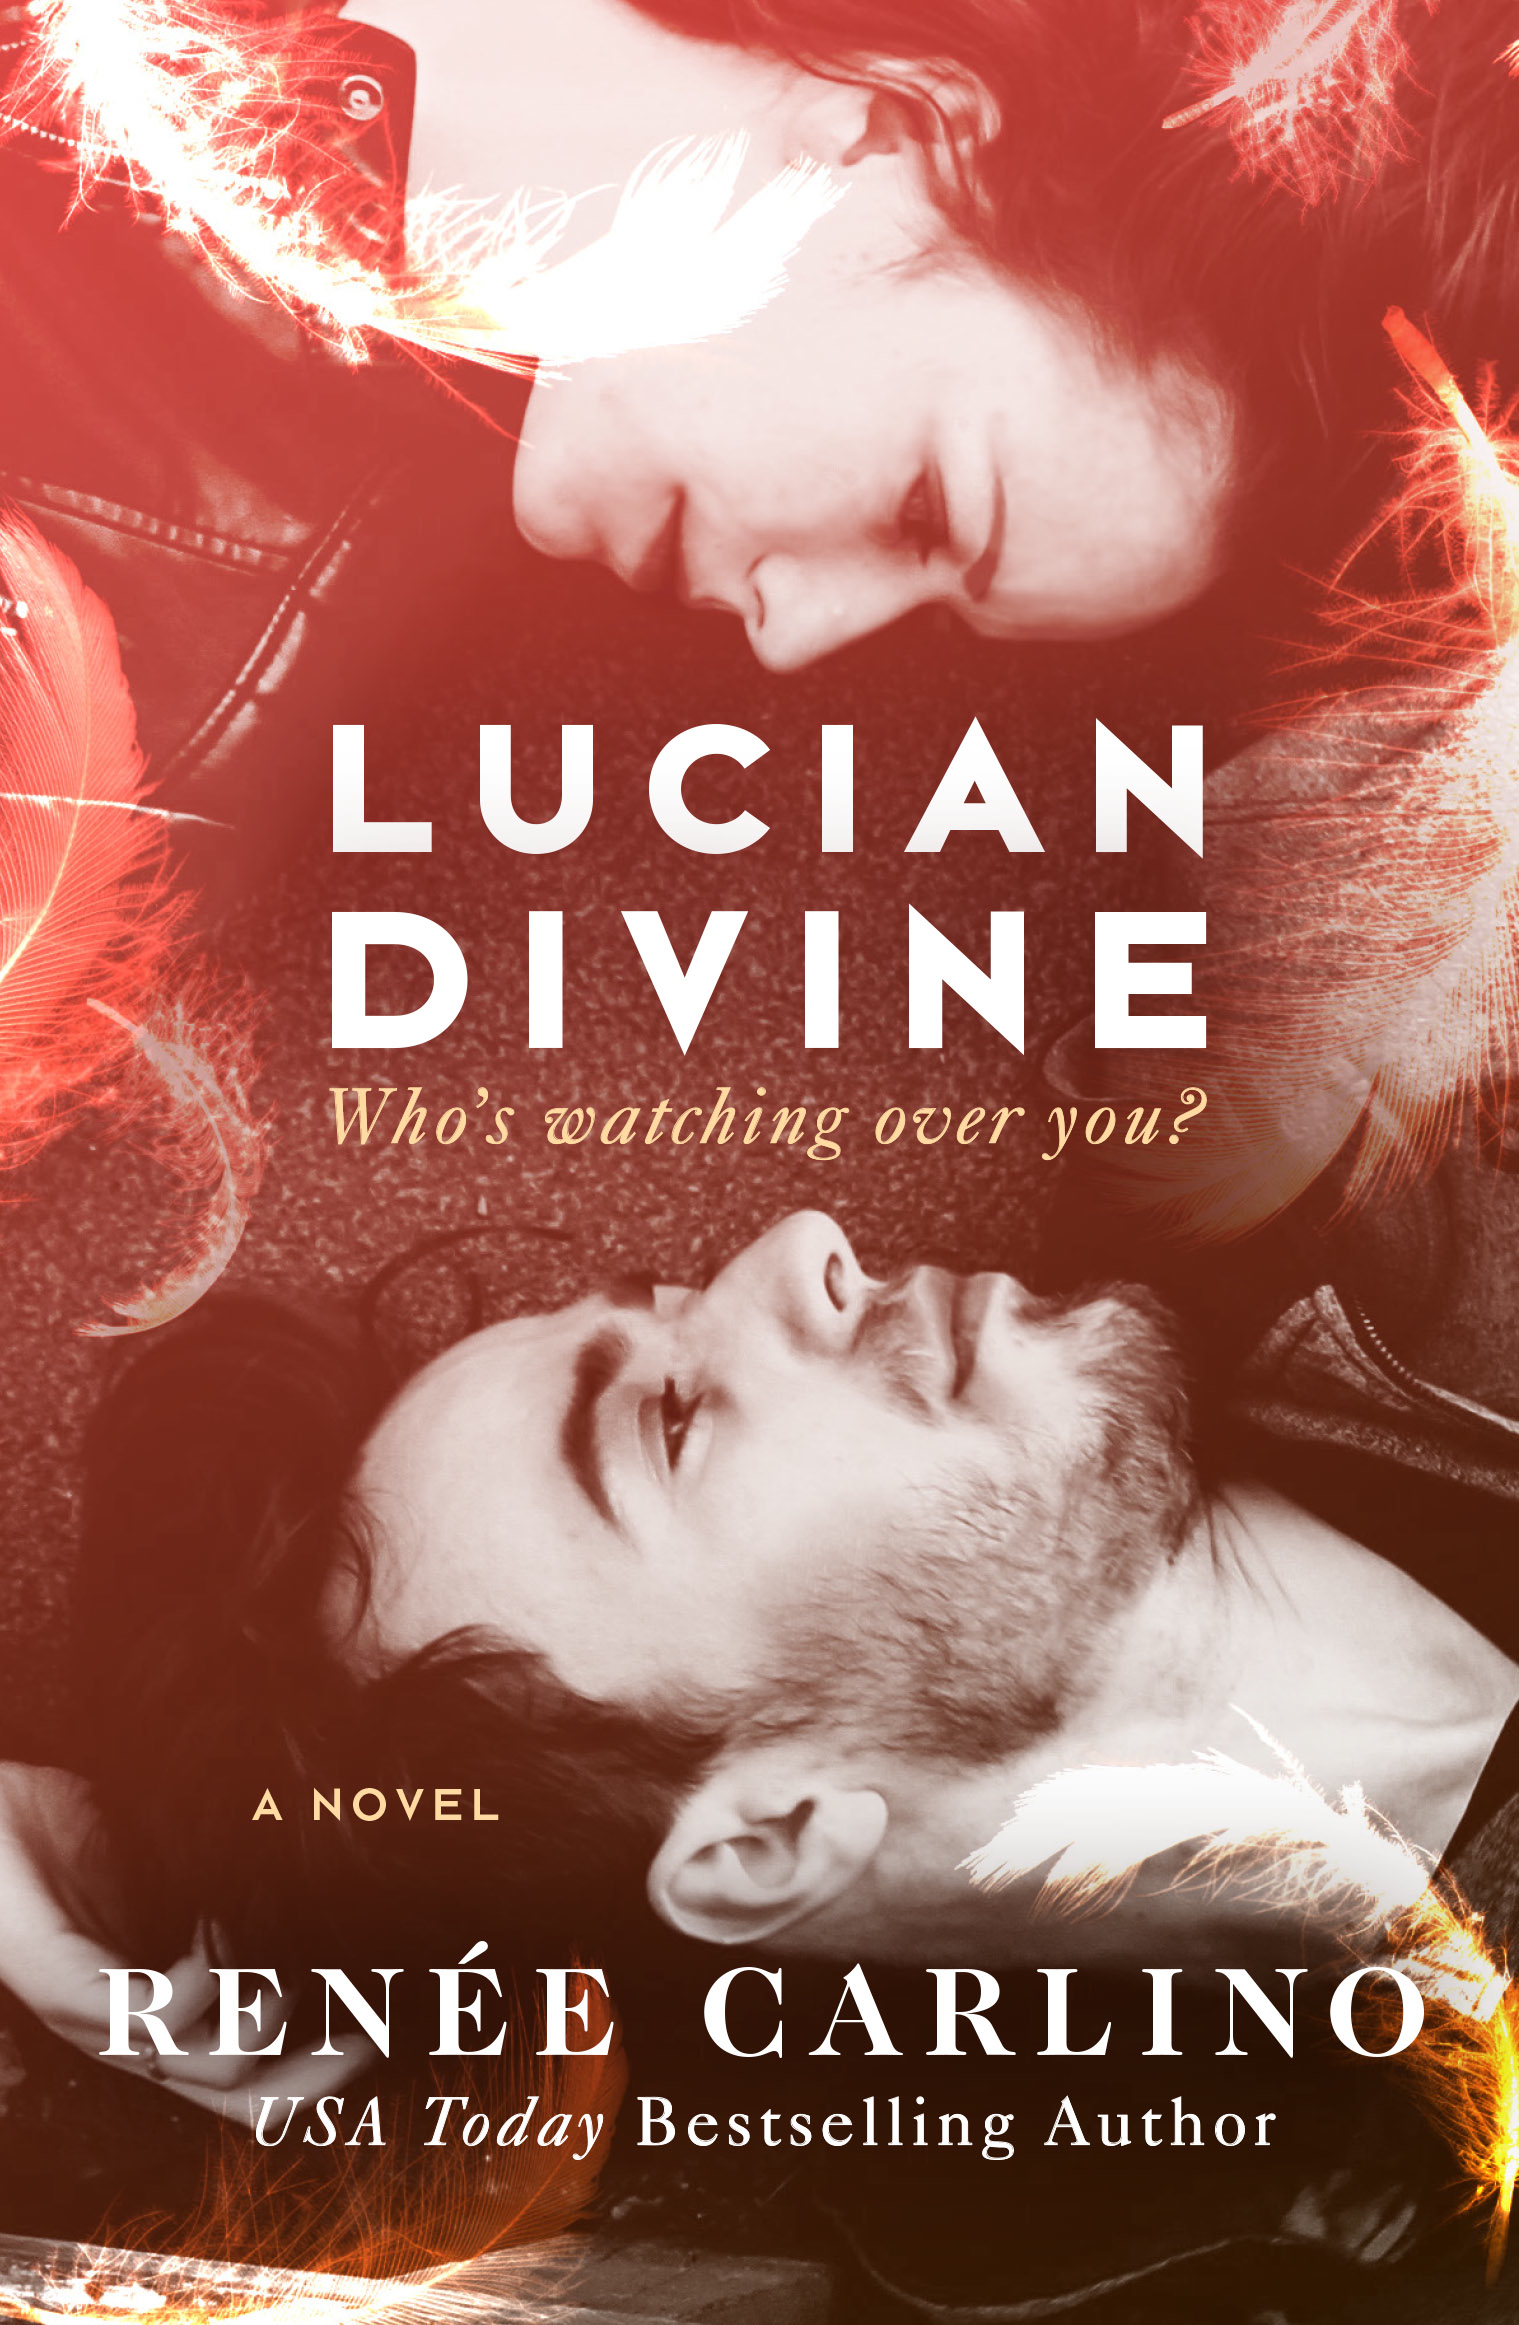 Cover Reveal for Lucian Divine by Renee Carlino